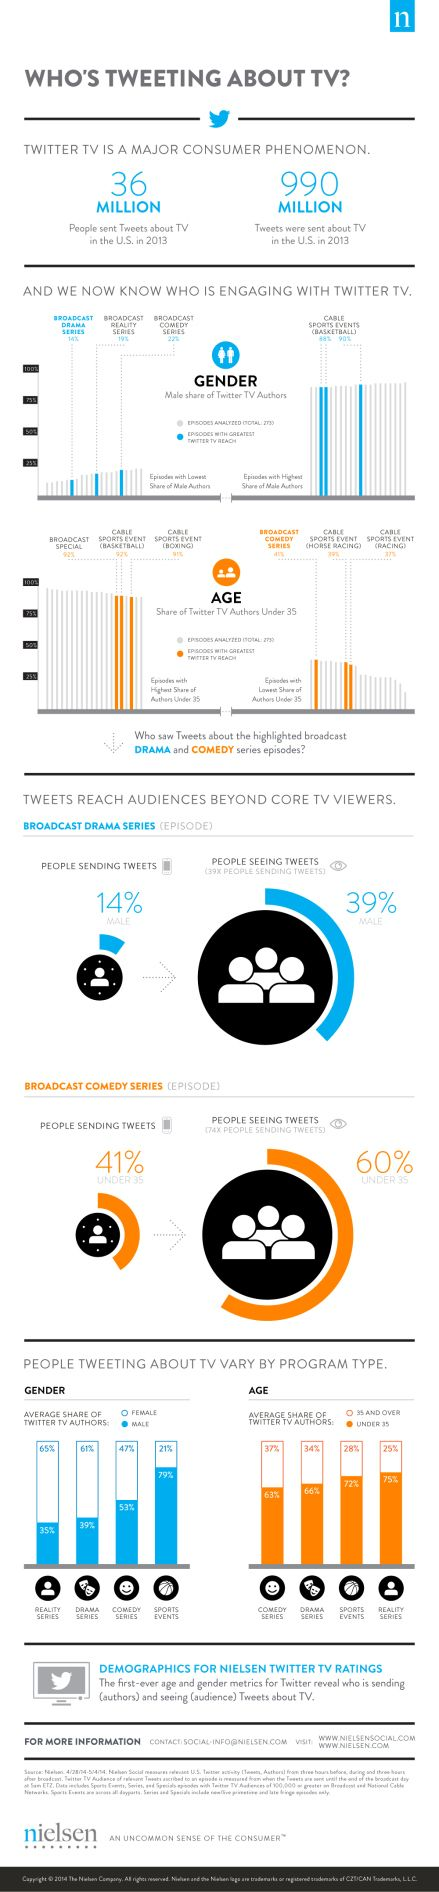 Nielsen's Twitter TV Ratings Now Identify The Age And Gender Of Those Tweeting About TV (Or Just Lurking)